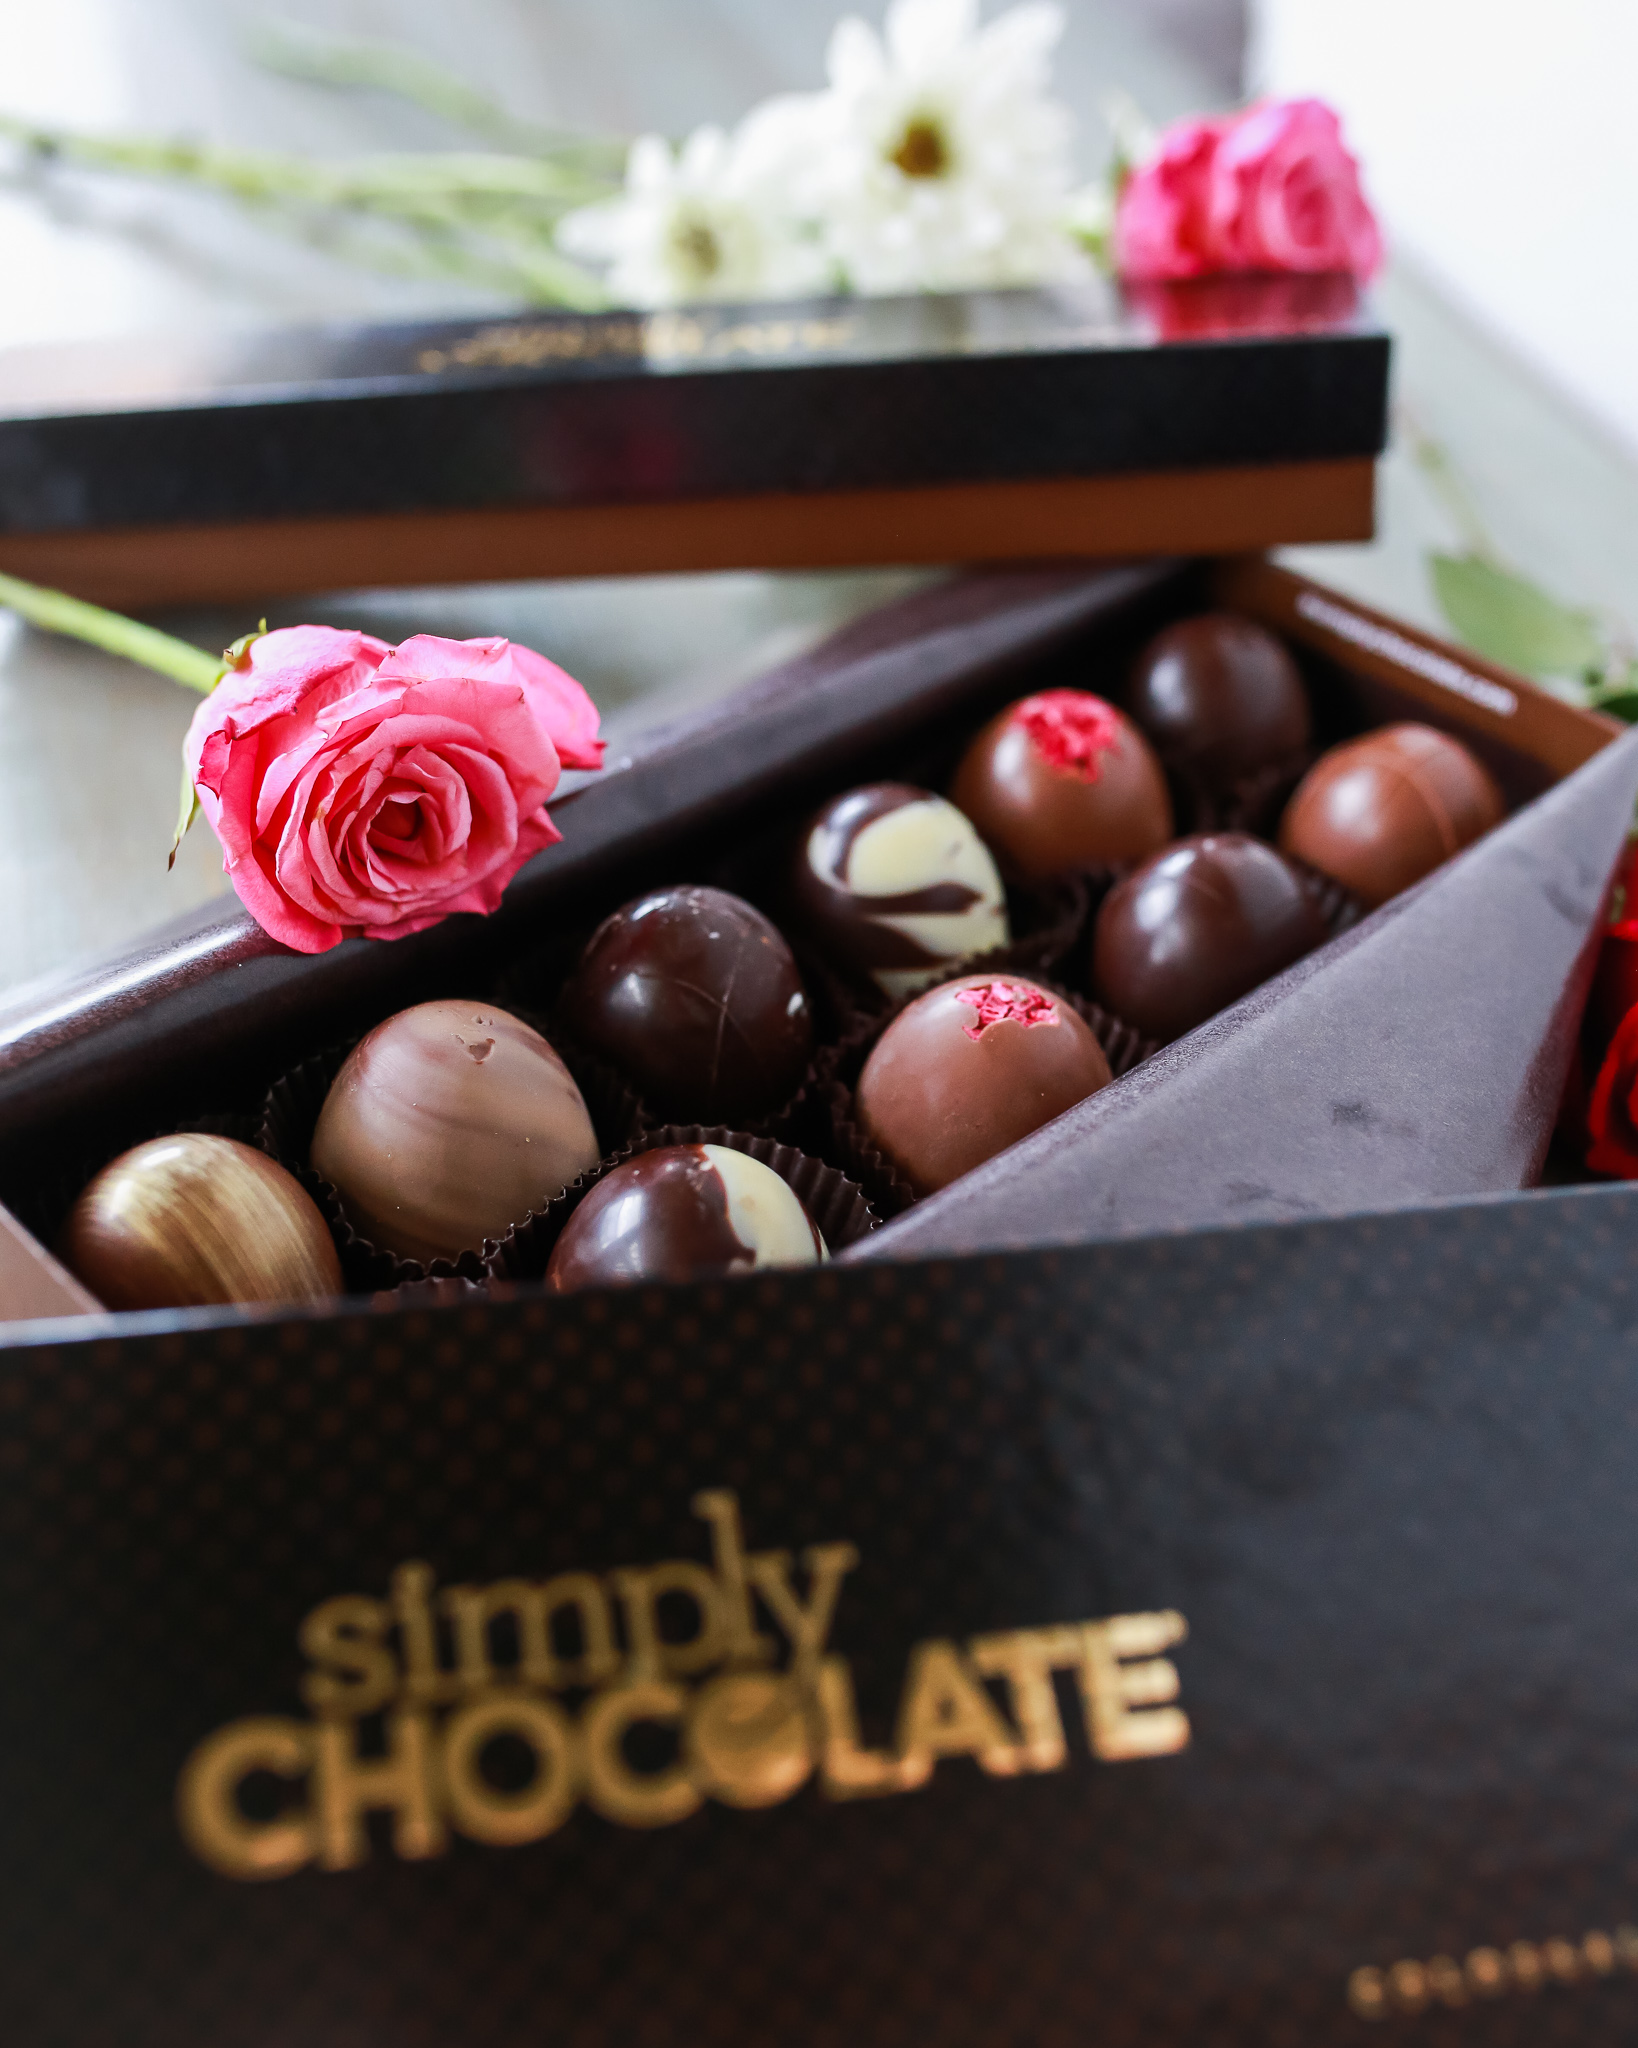 Delicious artisan chocolates for the win!